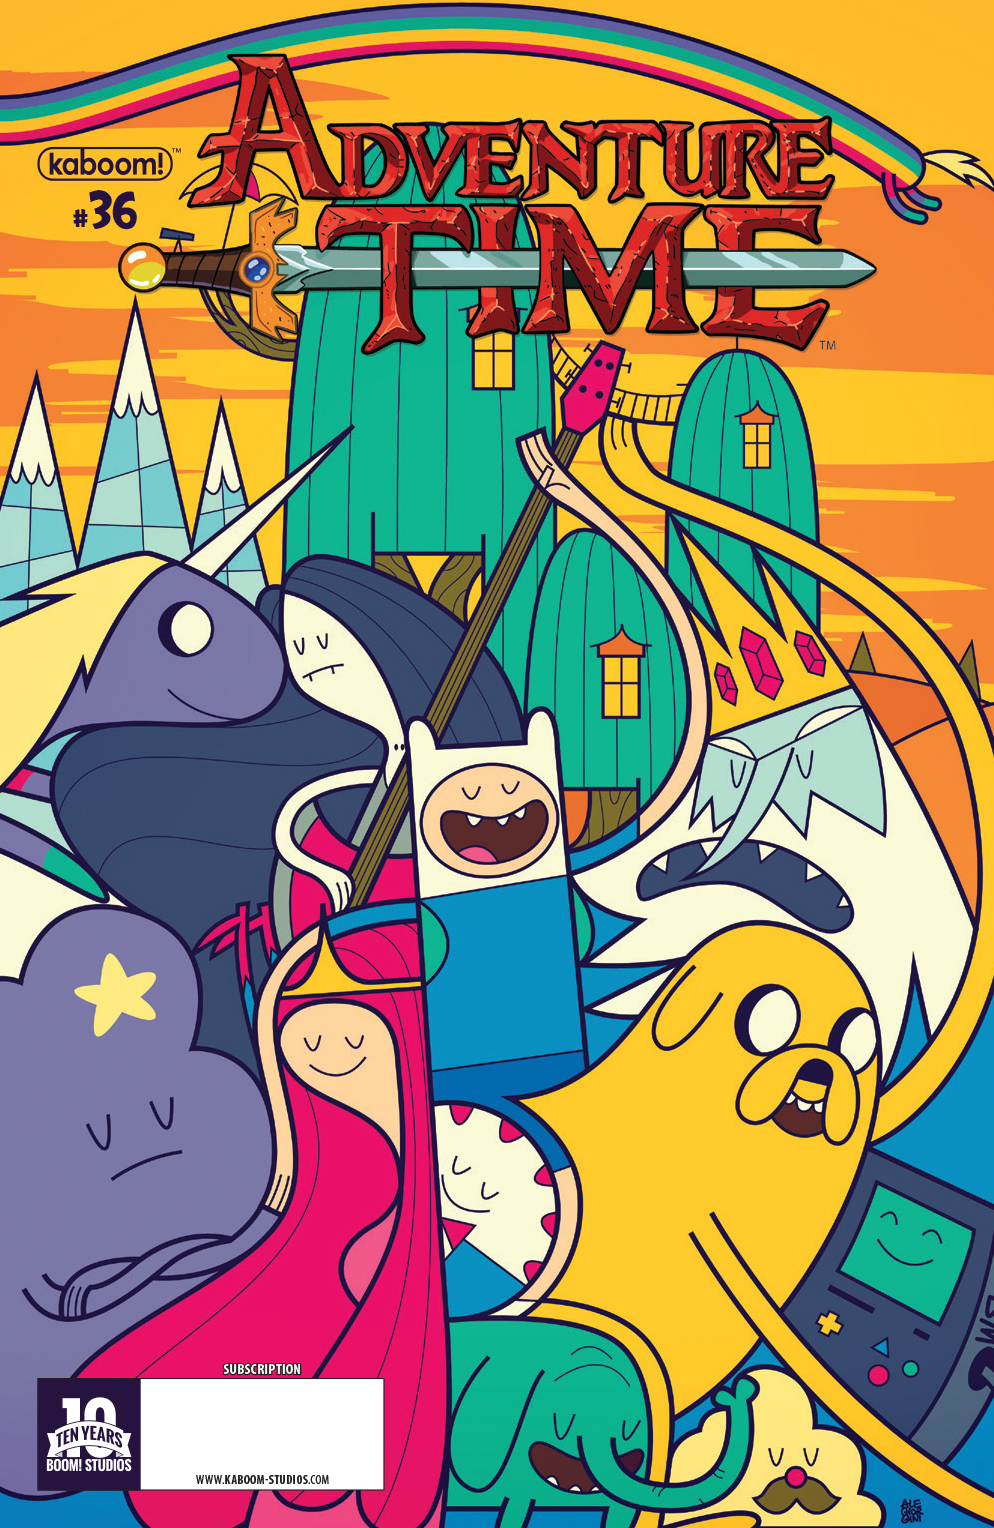 ADVENTURE TIME #36 SUBSCRIPTION GIORINI VAR